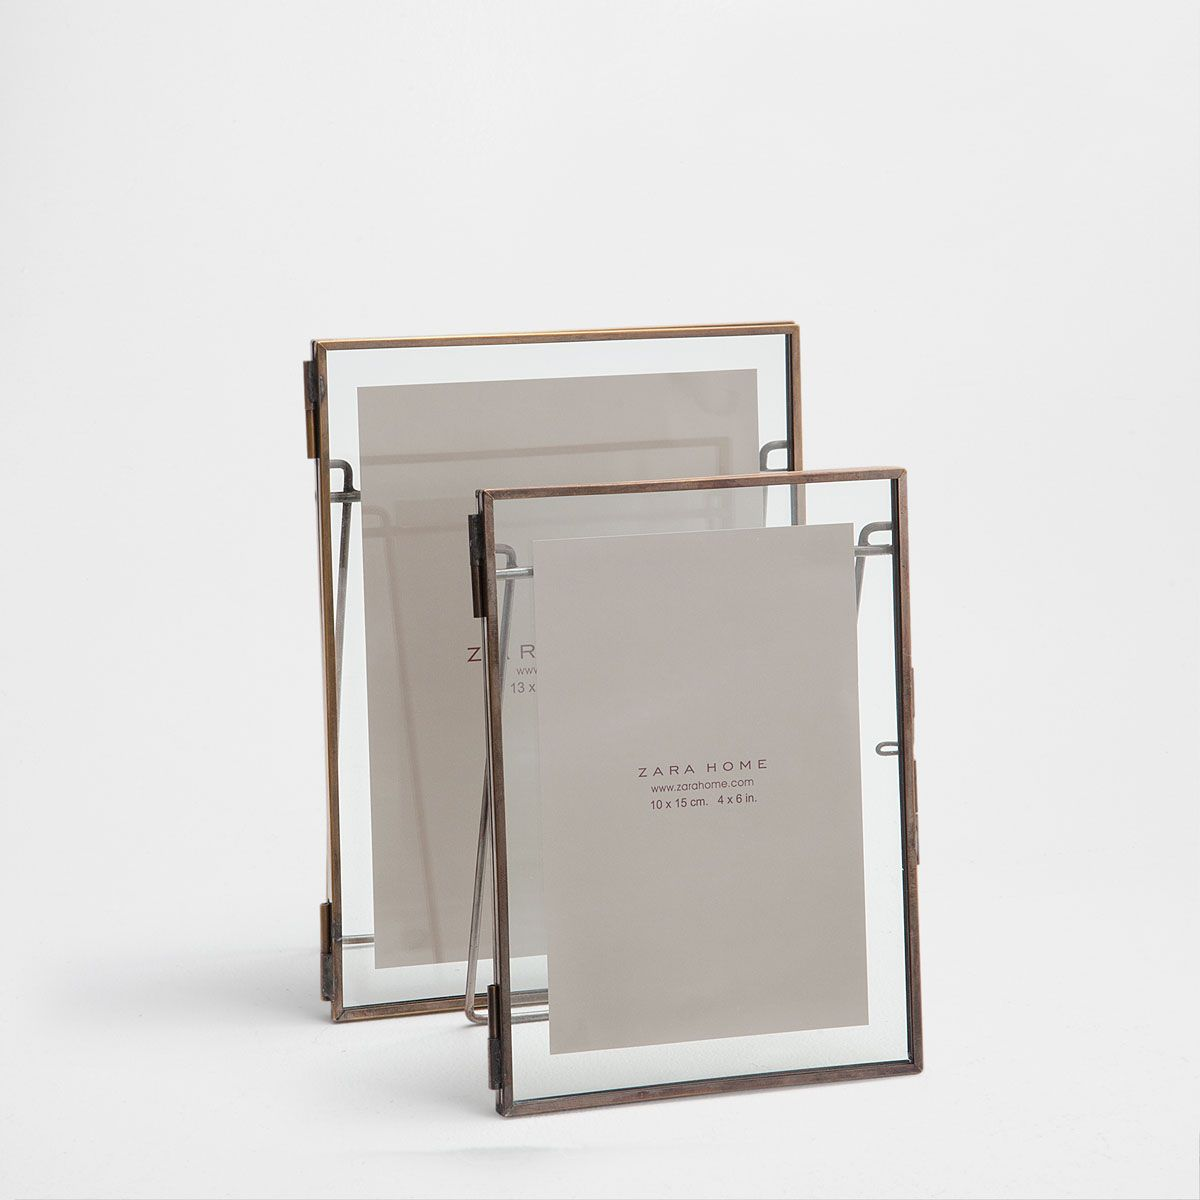 Image 1 of the product Stand-up mirror in aged golden metal | Home ...